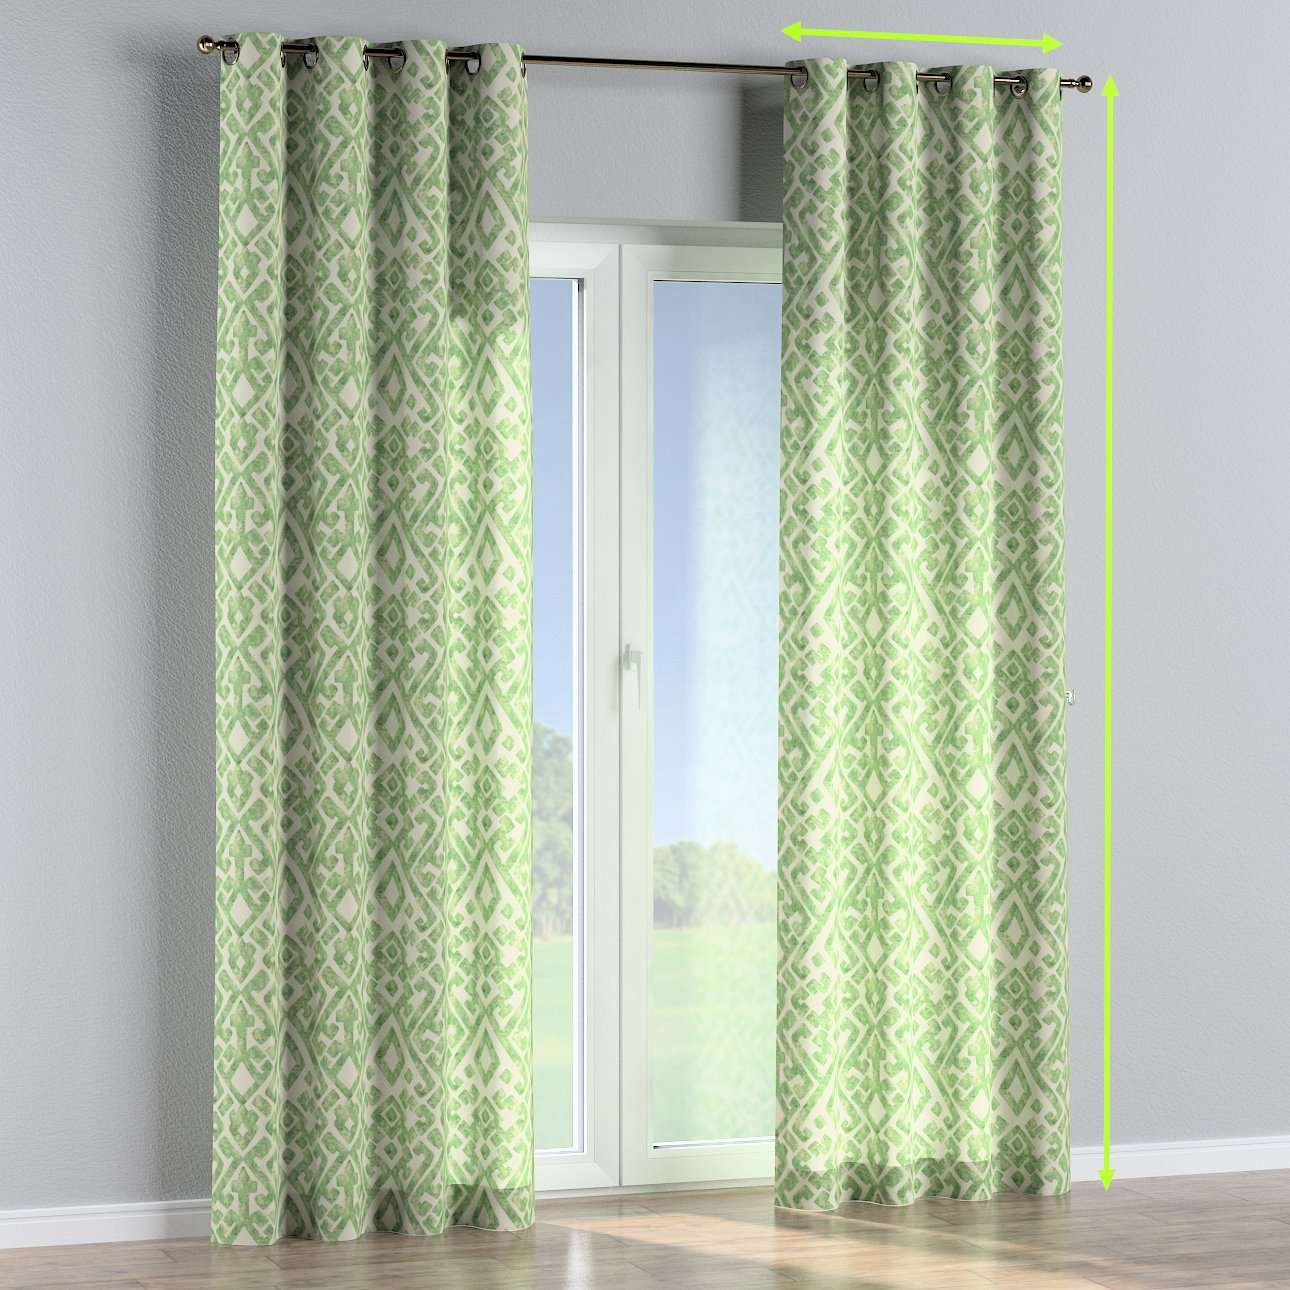 Eyelet curtains in collection Urban Jungle, fabric: 141-62